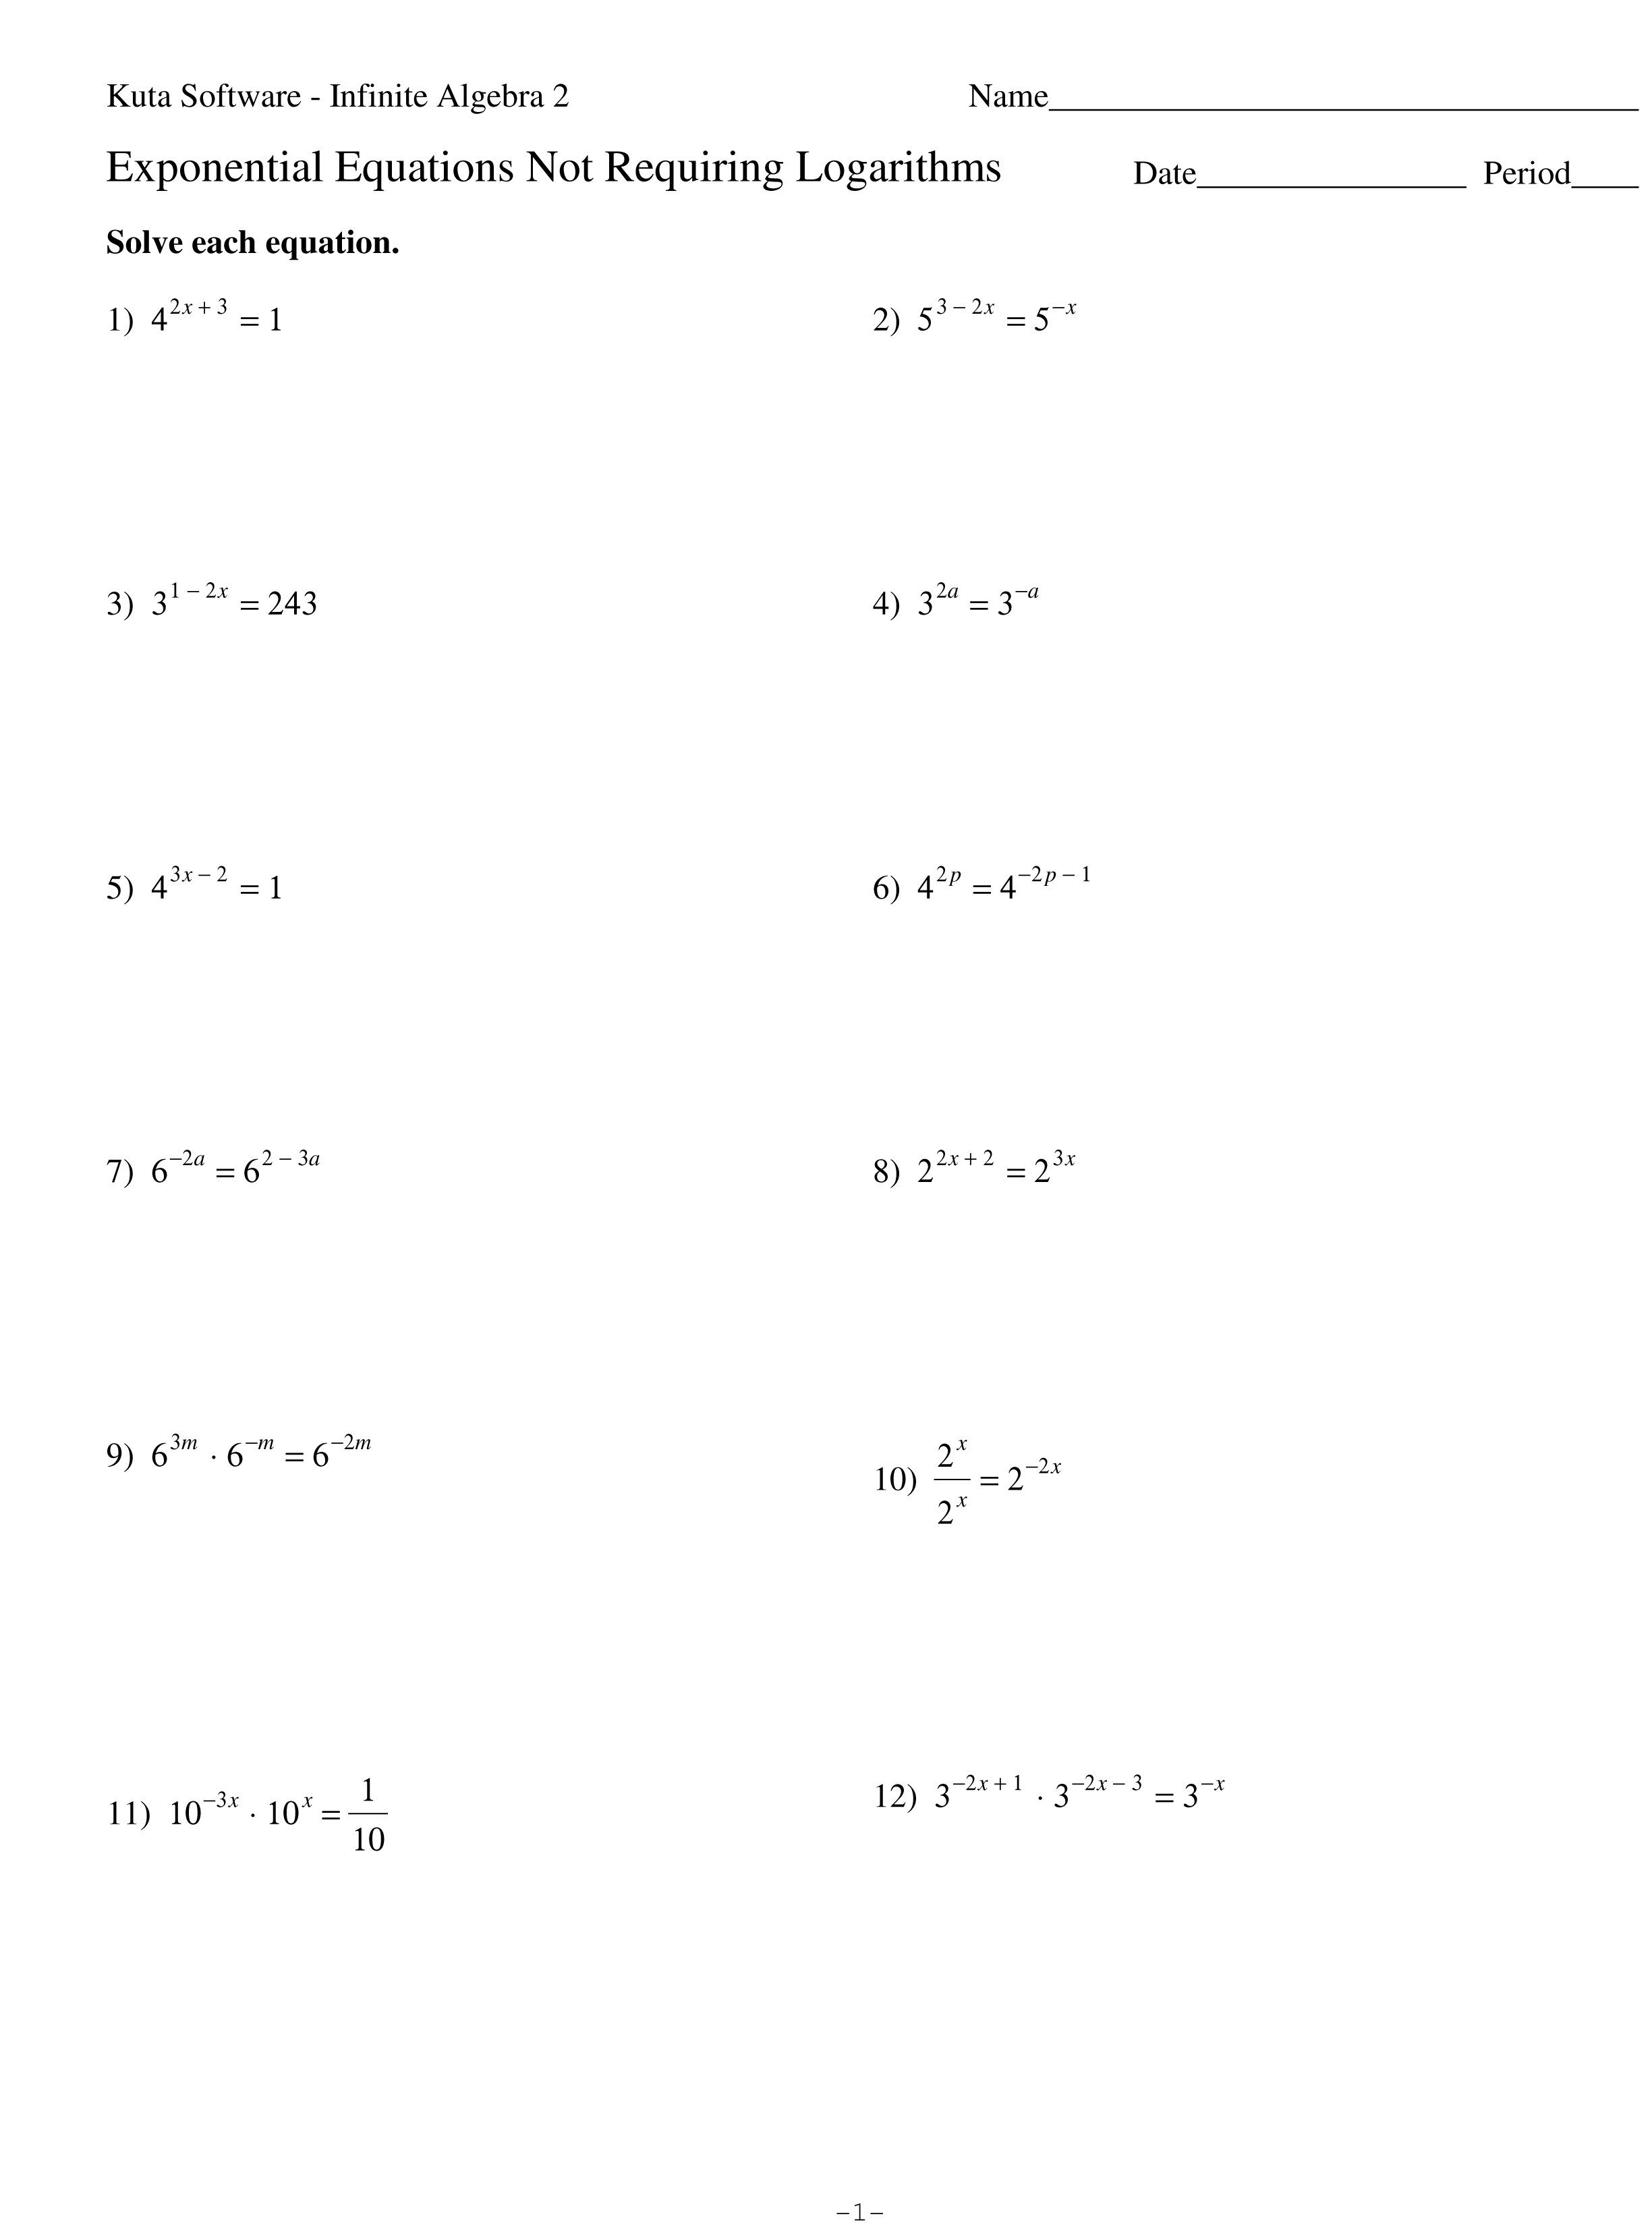 Solving Exponential Equations Without Logarithms Worksheet